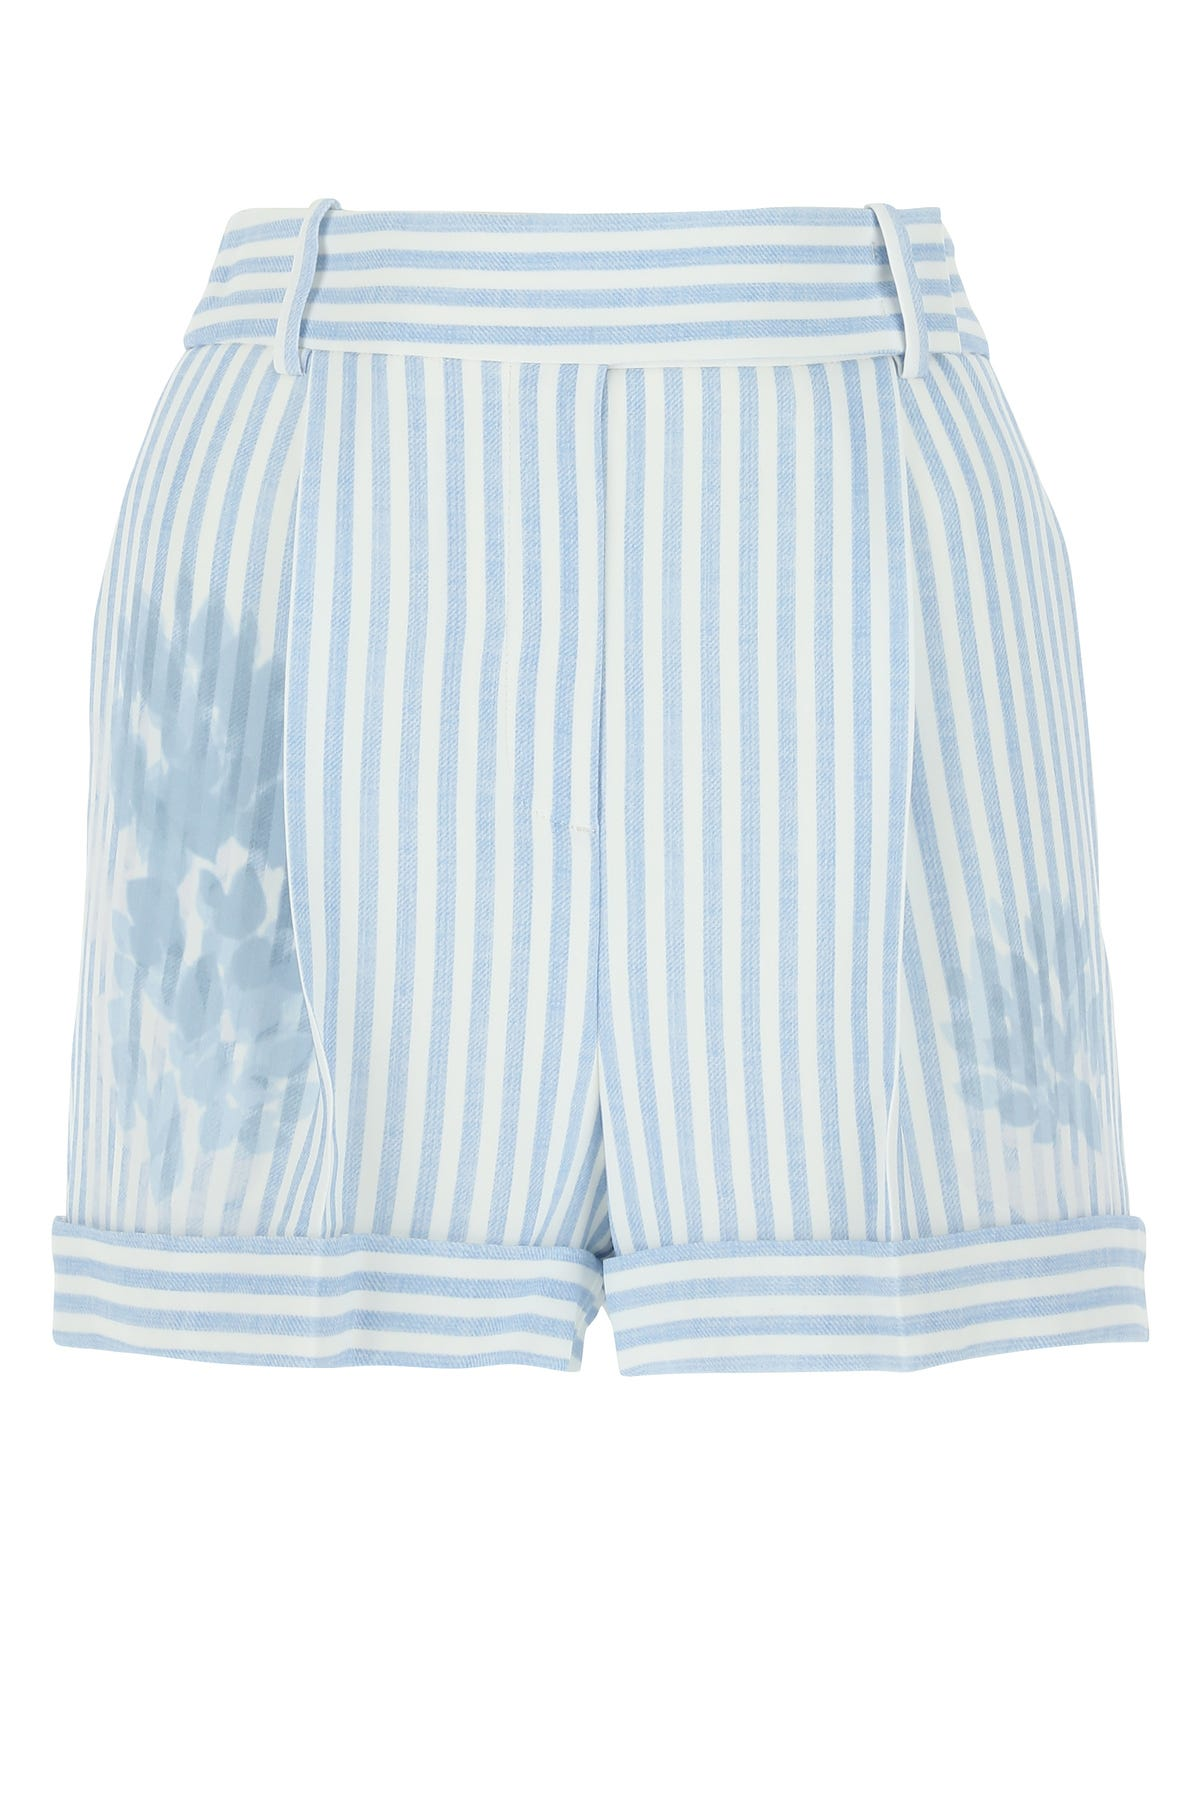 ERMANNO SCERVINO Shorts PRINTED STRETCH VISCOSE SHORTS  STRIPPED ERMANNO SCERVINO DONNA 40